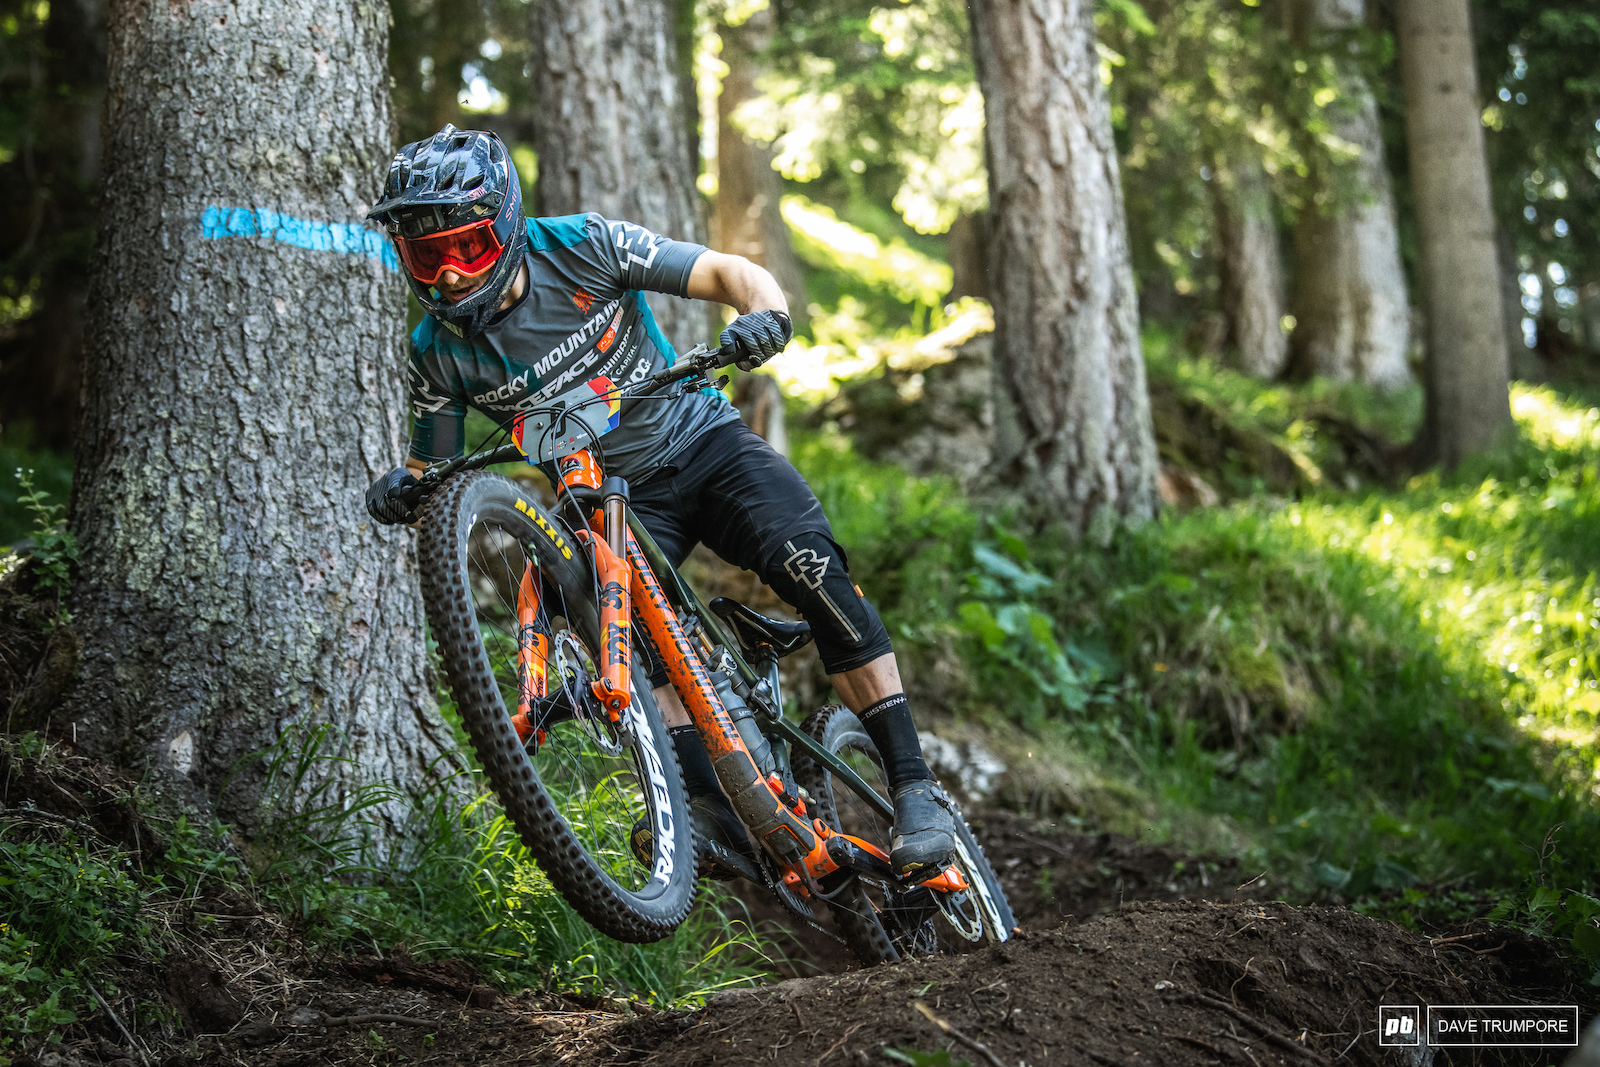 Jesse Melamed only has one podium finish this season but his consistency has landed him 2nd in the overall.